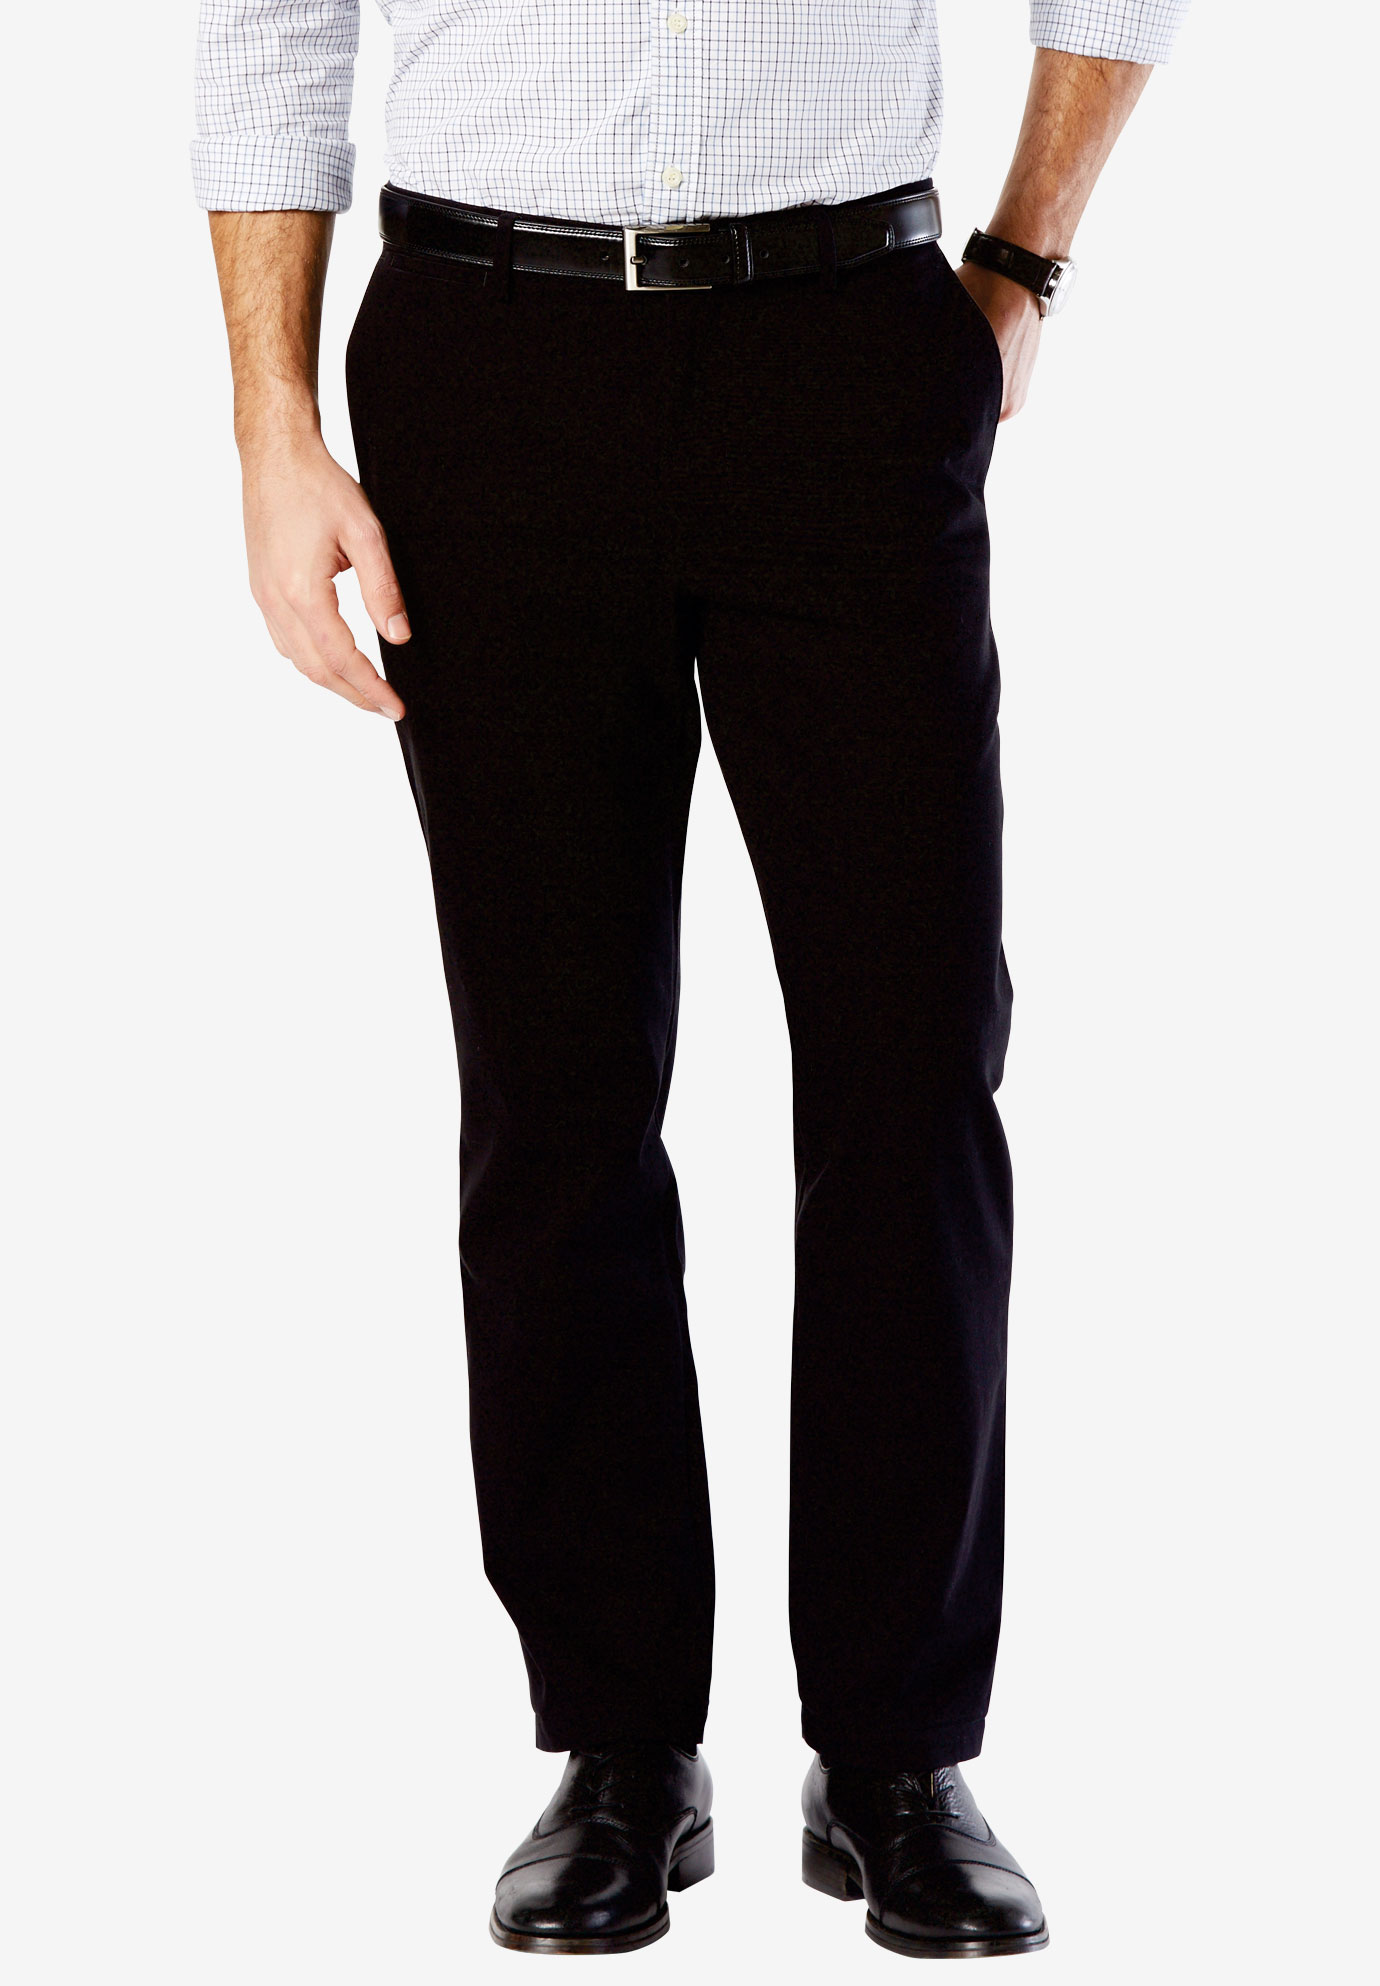 Easy-Care Flat Front Khaki Pants By Dockers®